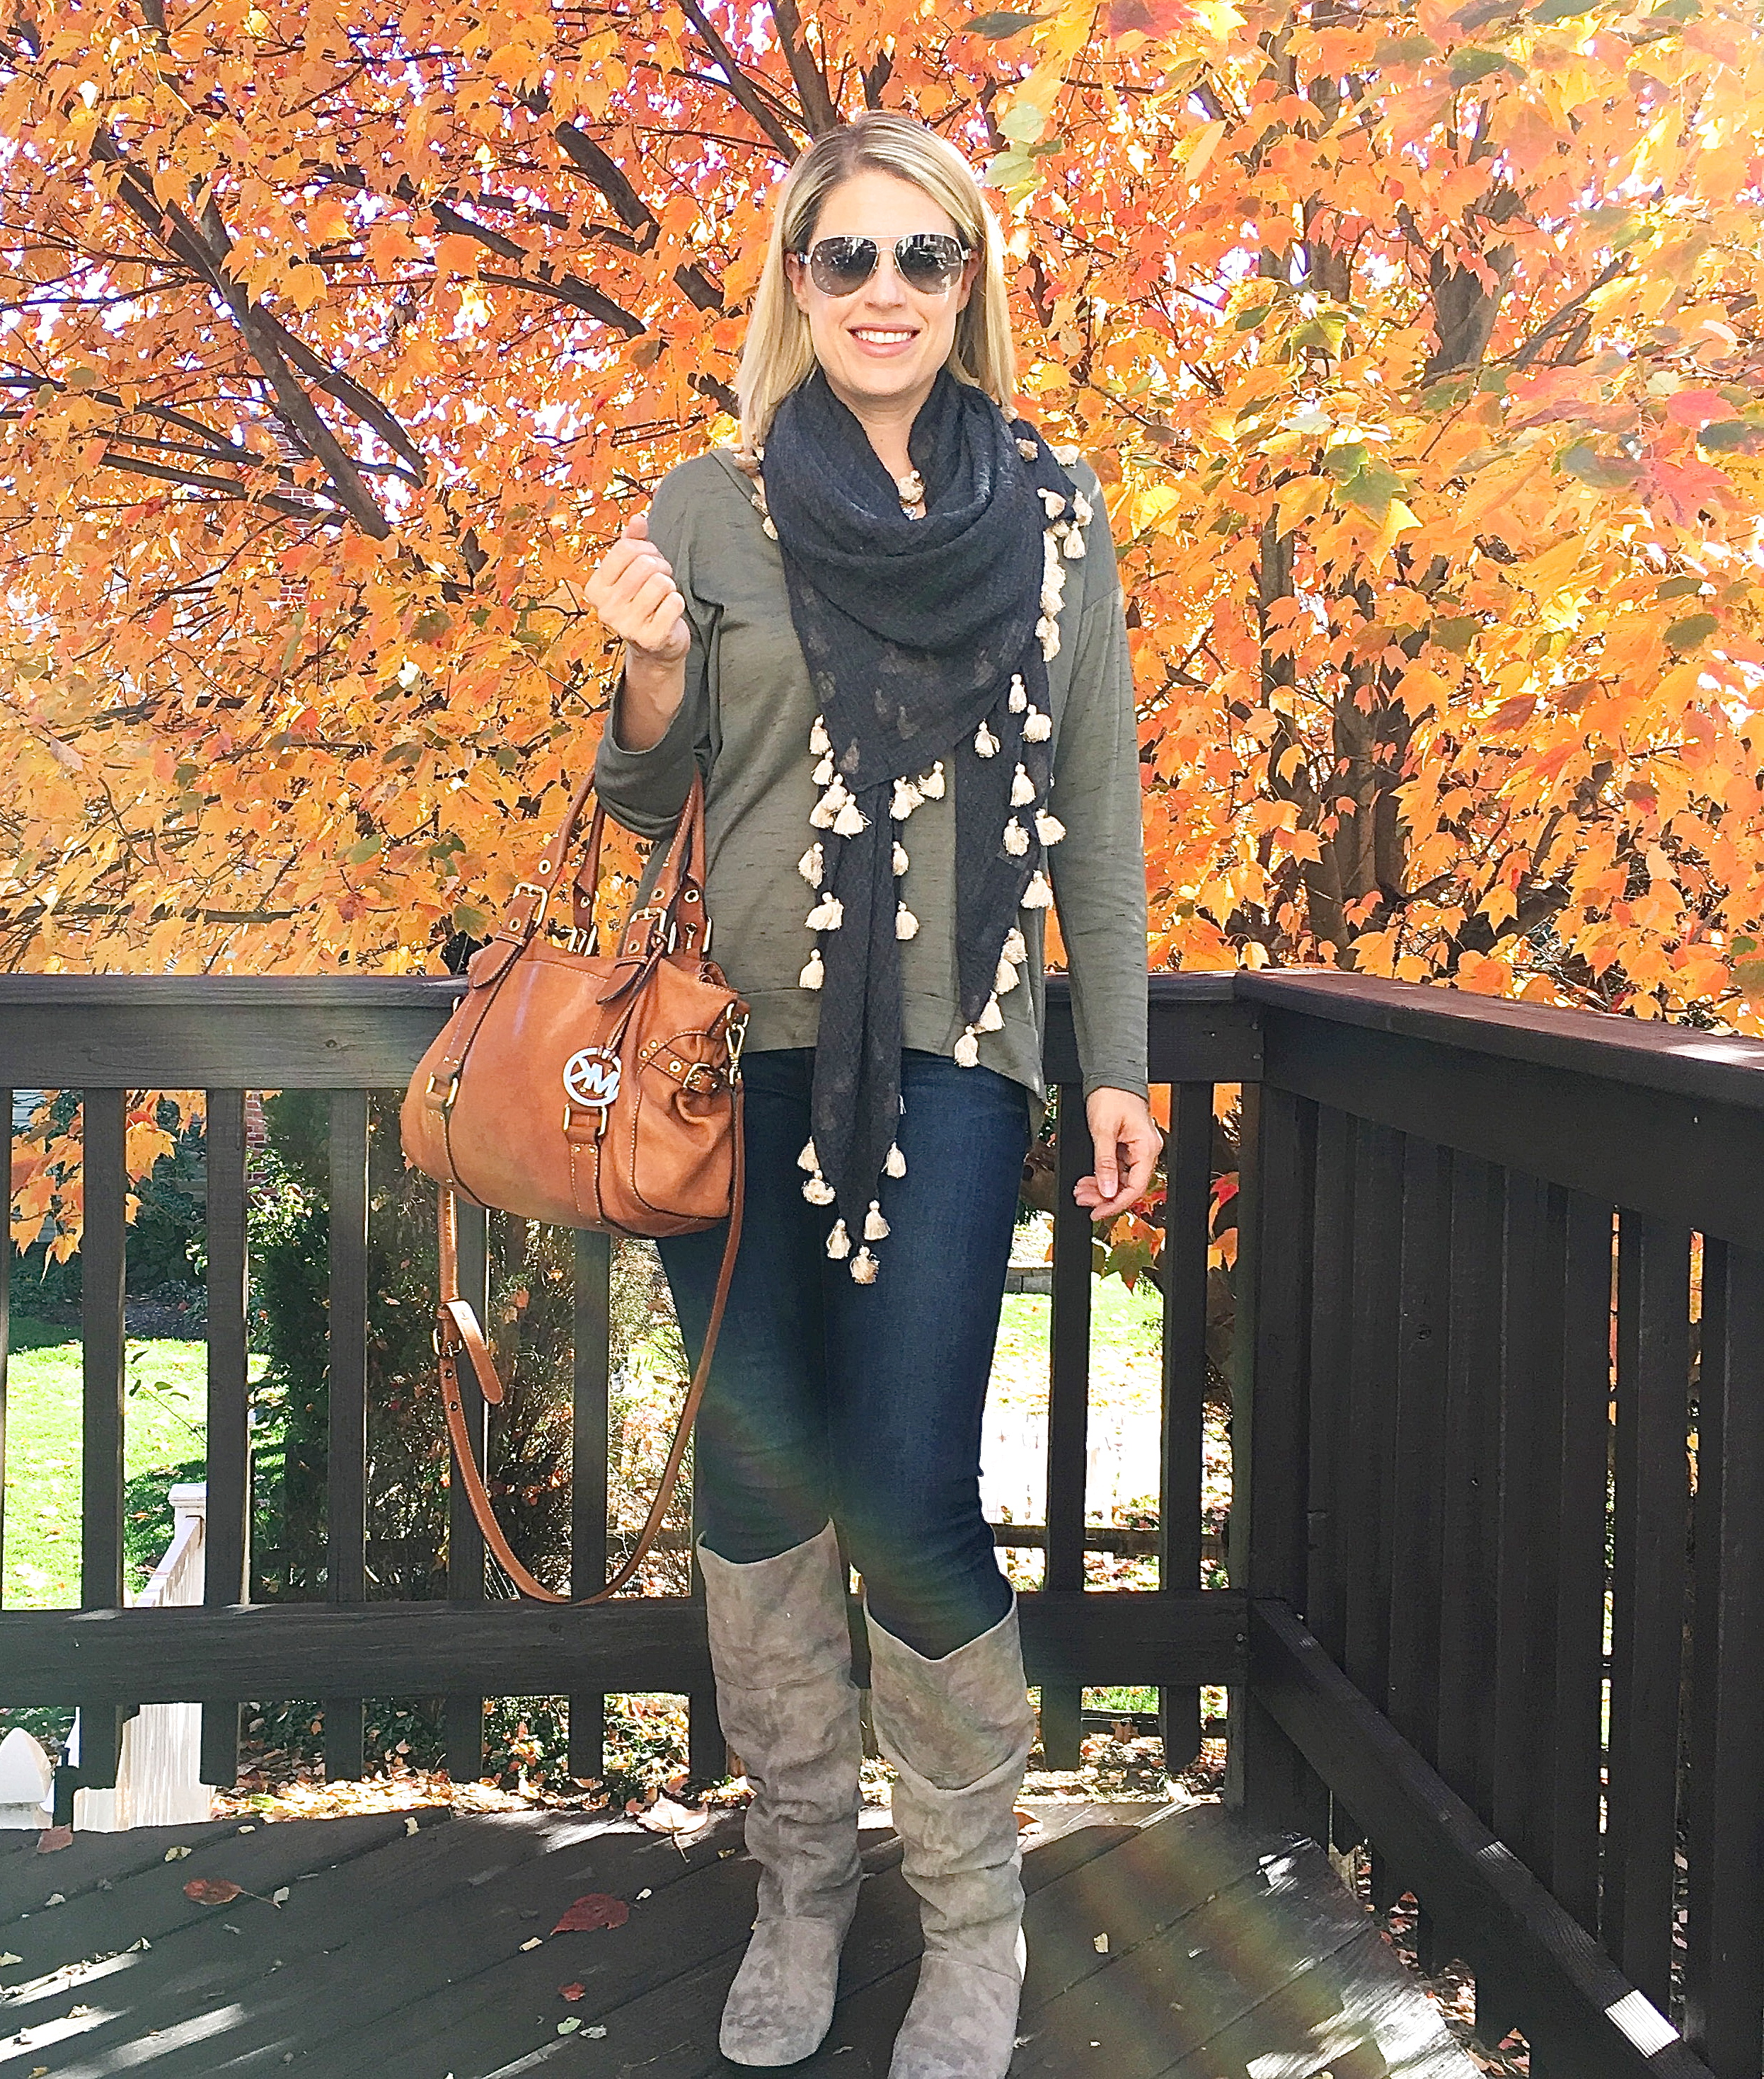 Fashion finds for daily mom style! (shhhh... fashion over 40 can be stylish and fun!)